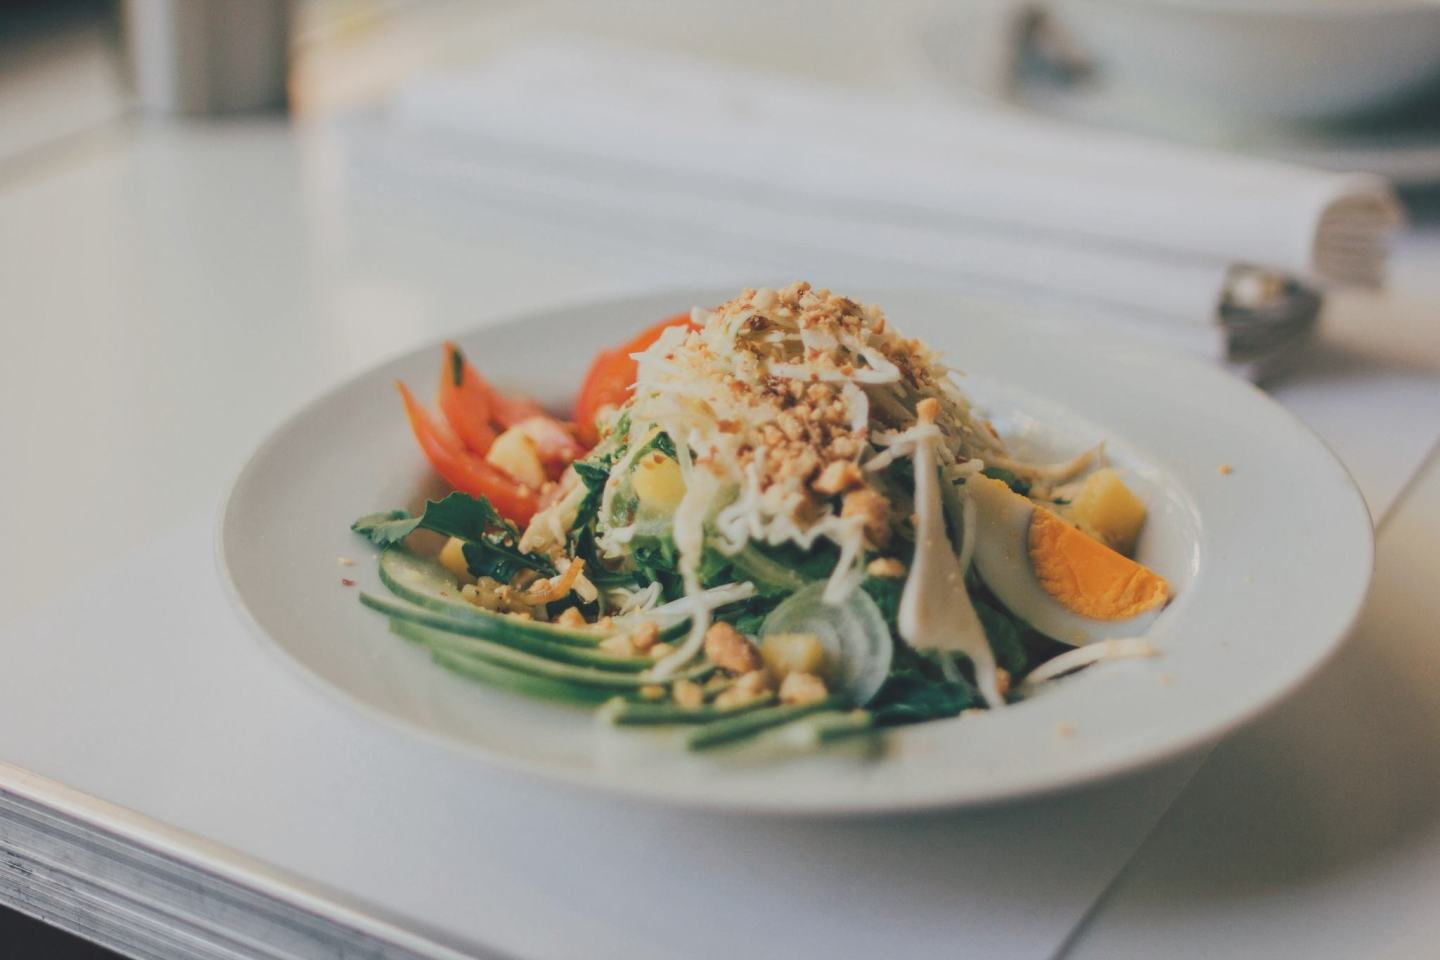 A healthy meal good habits for switching up your life